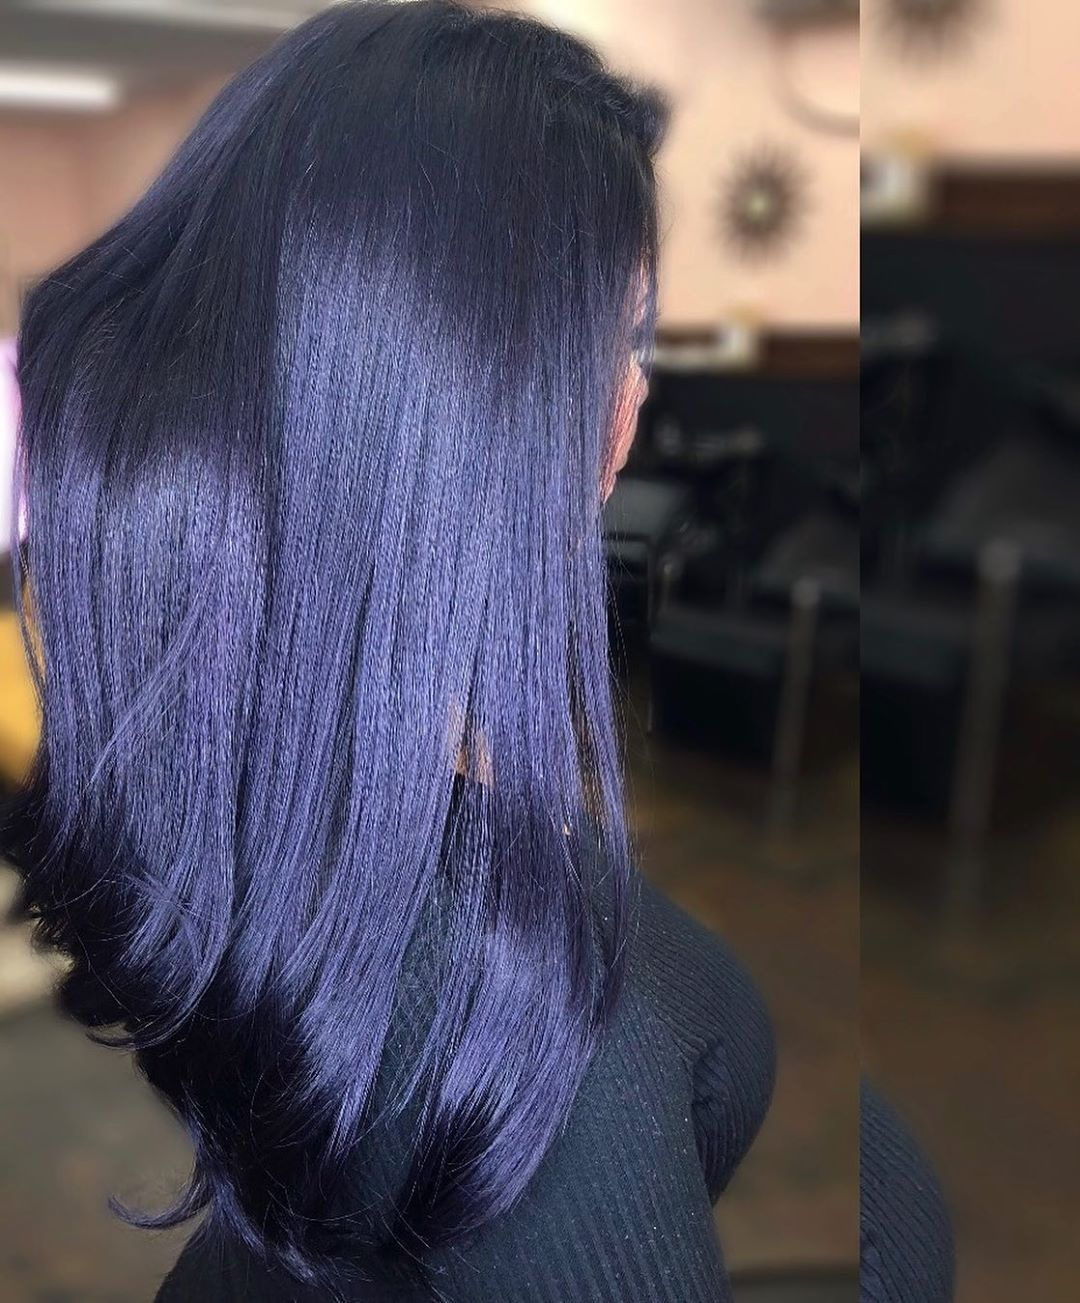 123 Likes 8 Comments Lucero Esquivias Ohlucyy On Instagram Blue Violet Hair And Hands Lol Cropped Those Ou In 2020 Dark Violet Hair Dyed Hair Blue Violet Hair